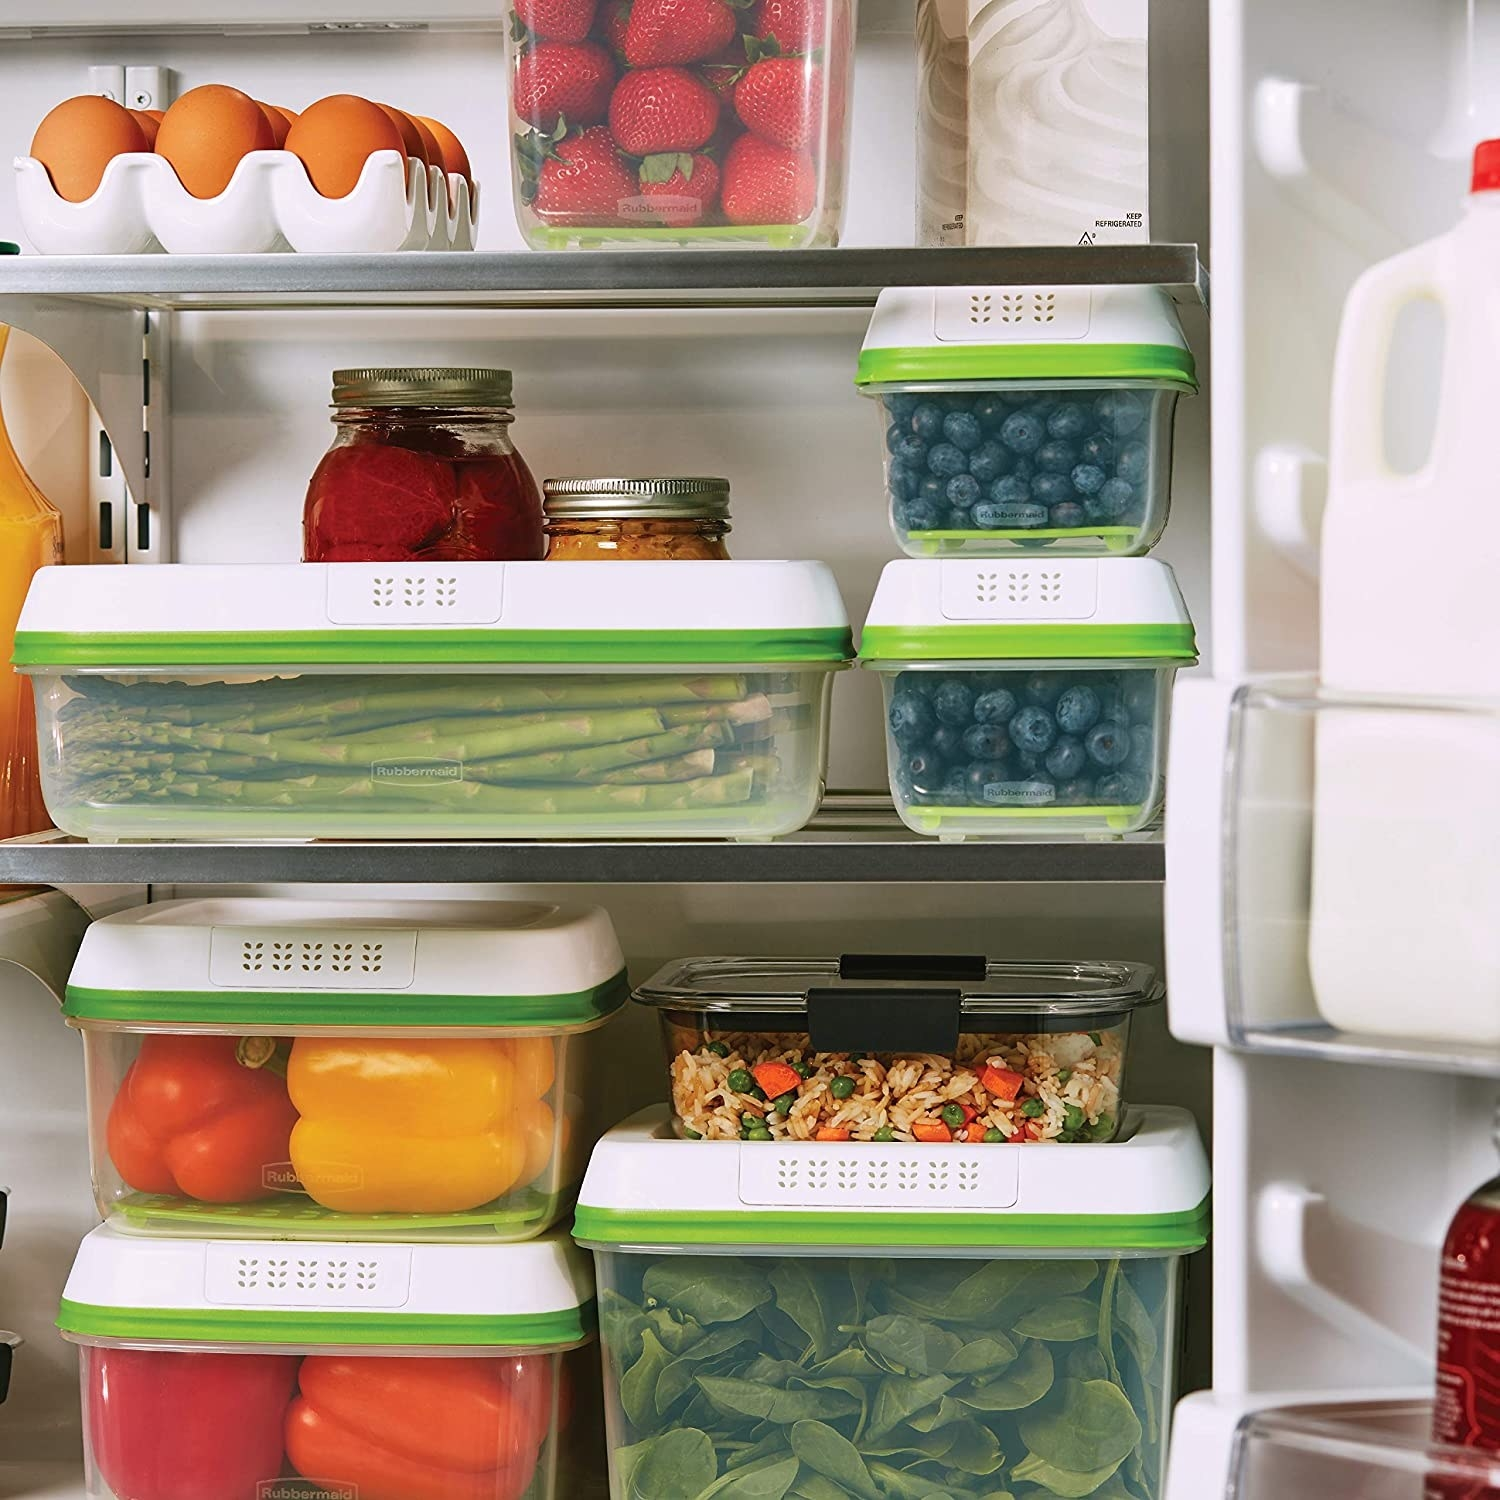 The containers filled with vegetables and fruit inside a refrigerator